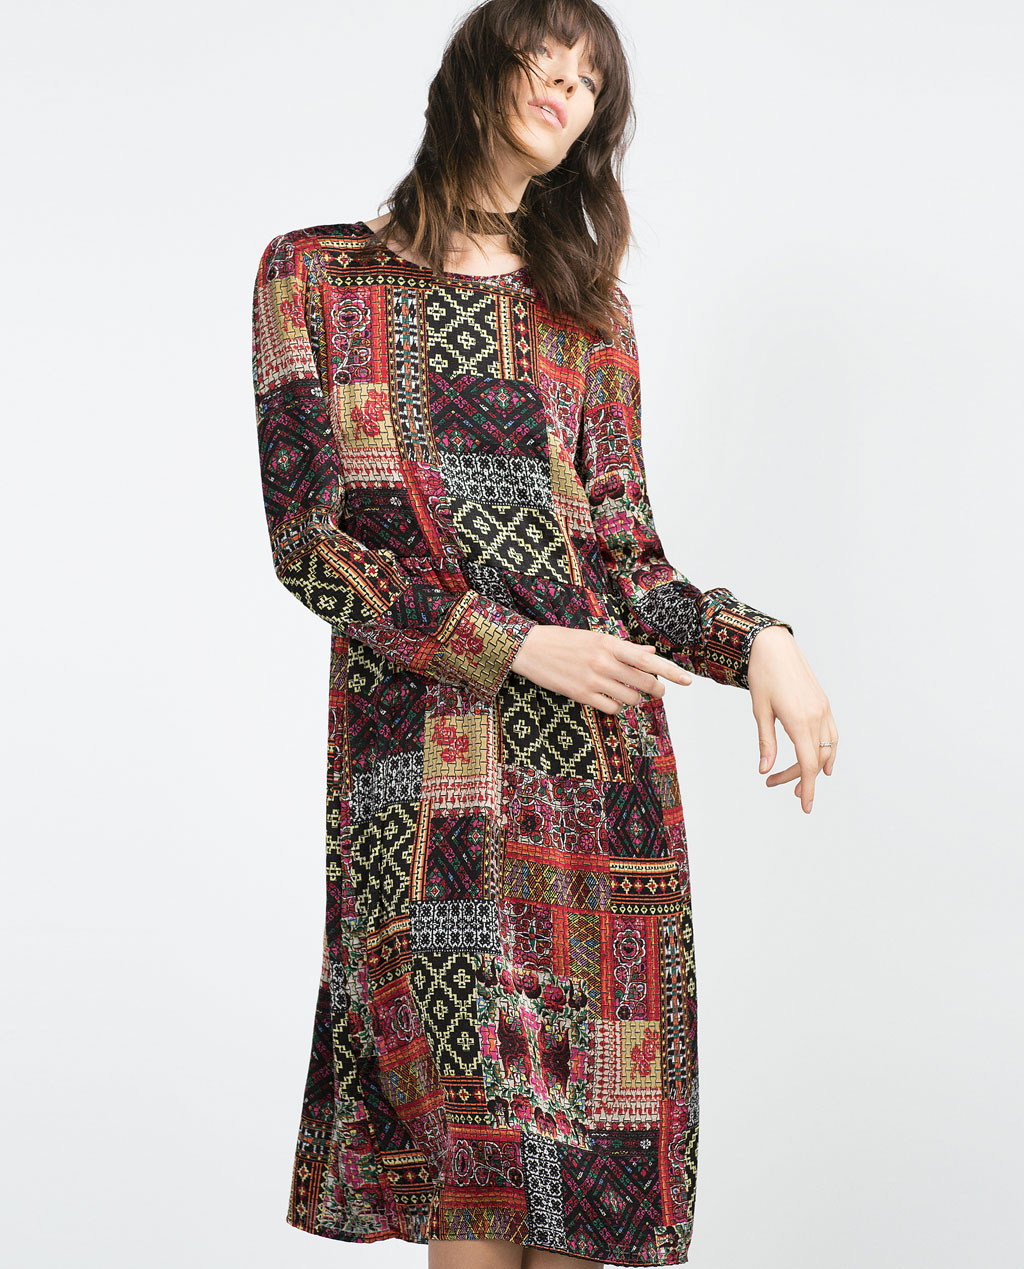 http://www.zara.com/ch/en/woman/dresses/view-all/patchwork-dress-c733885p2776615.html